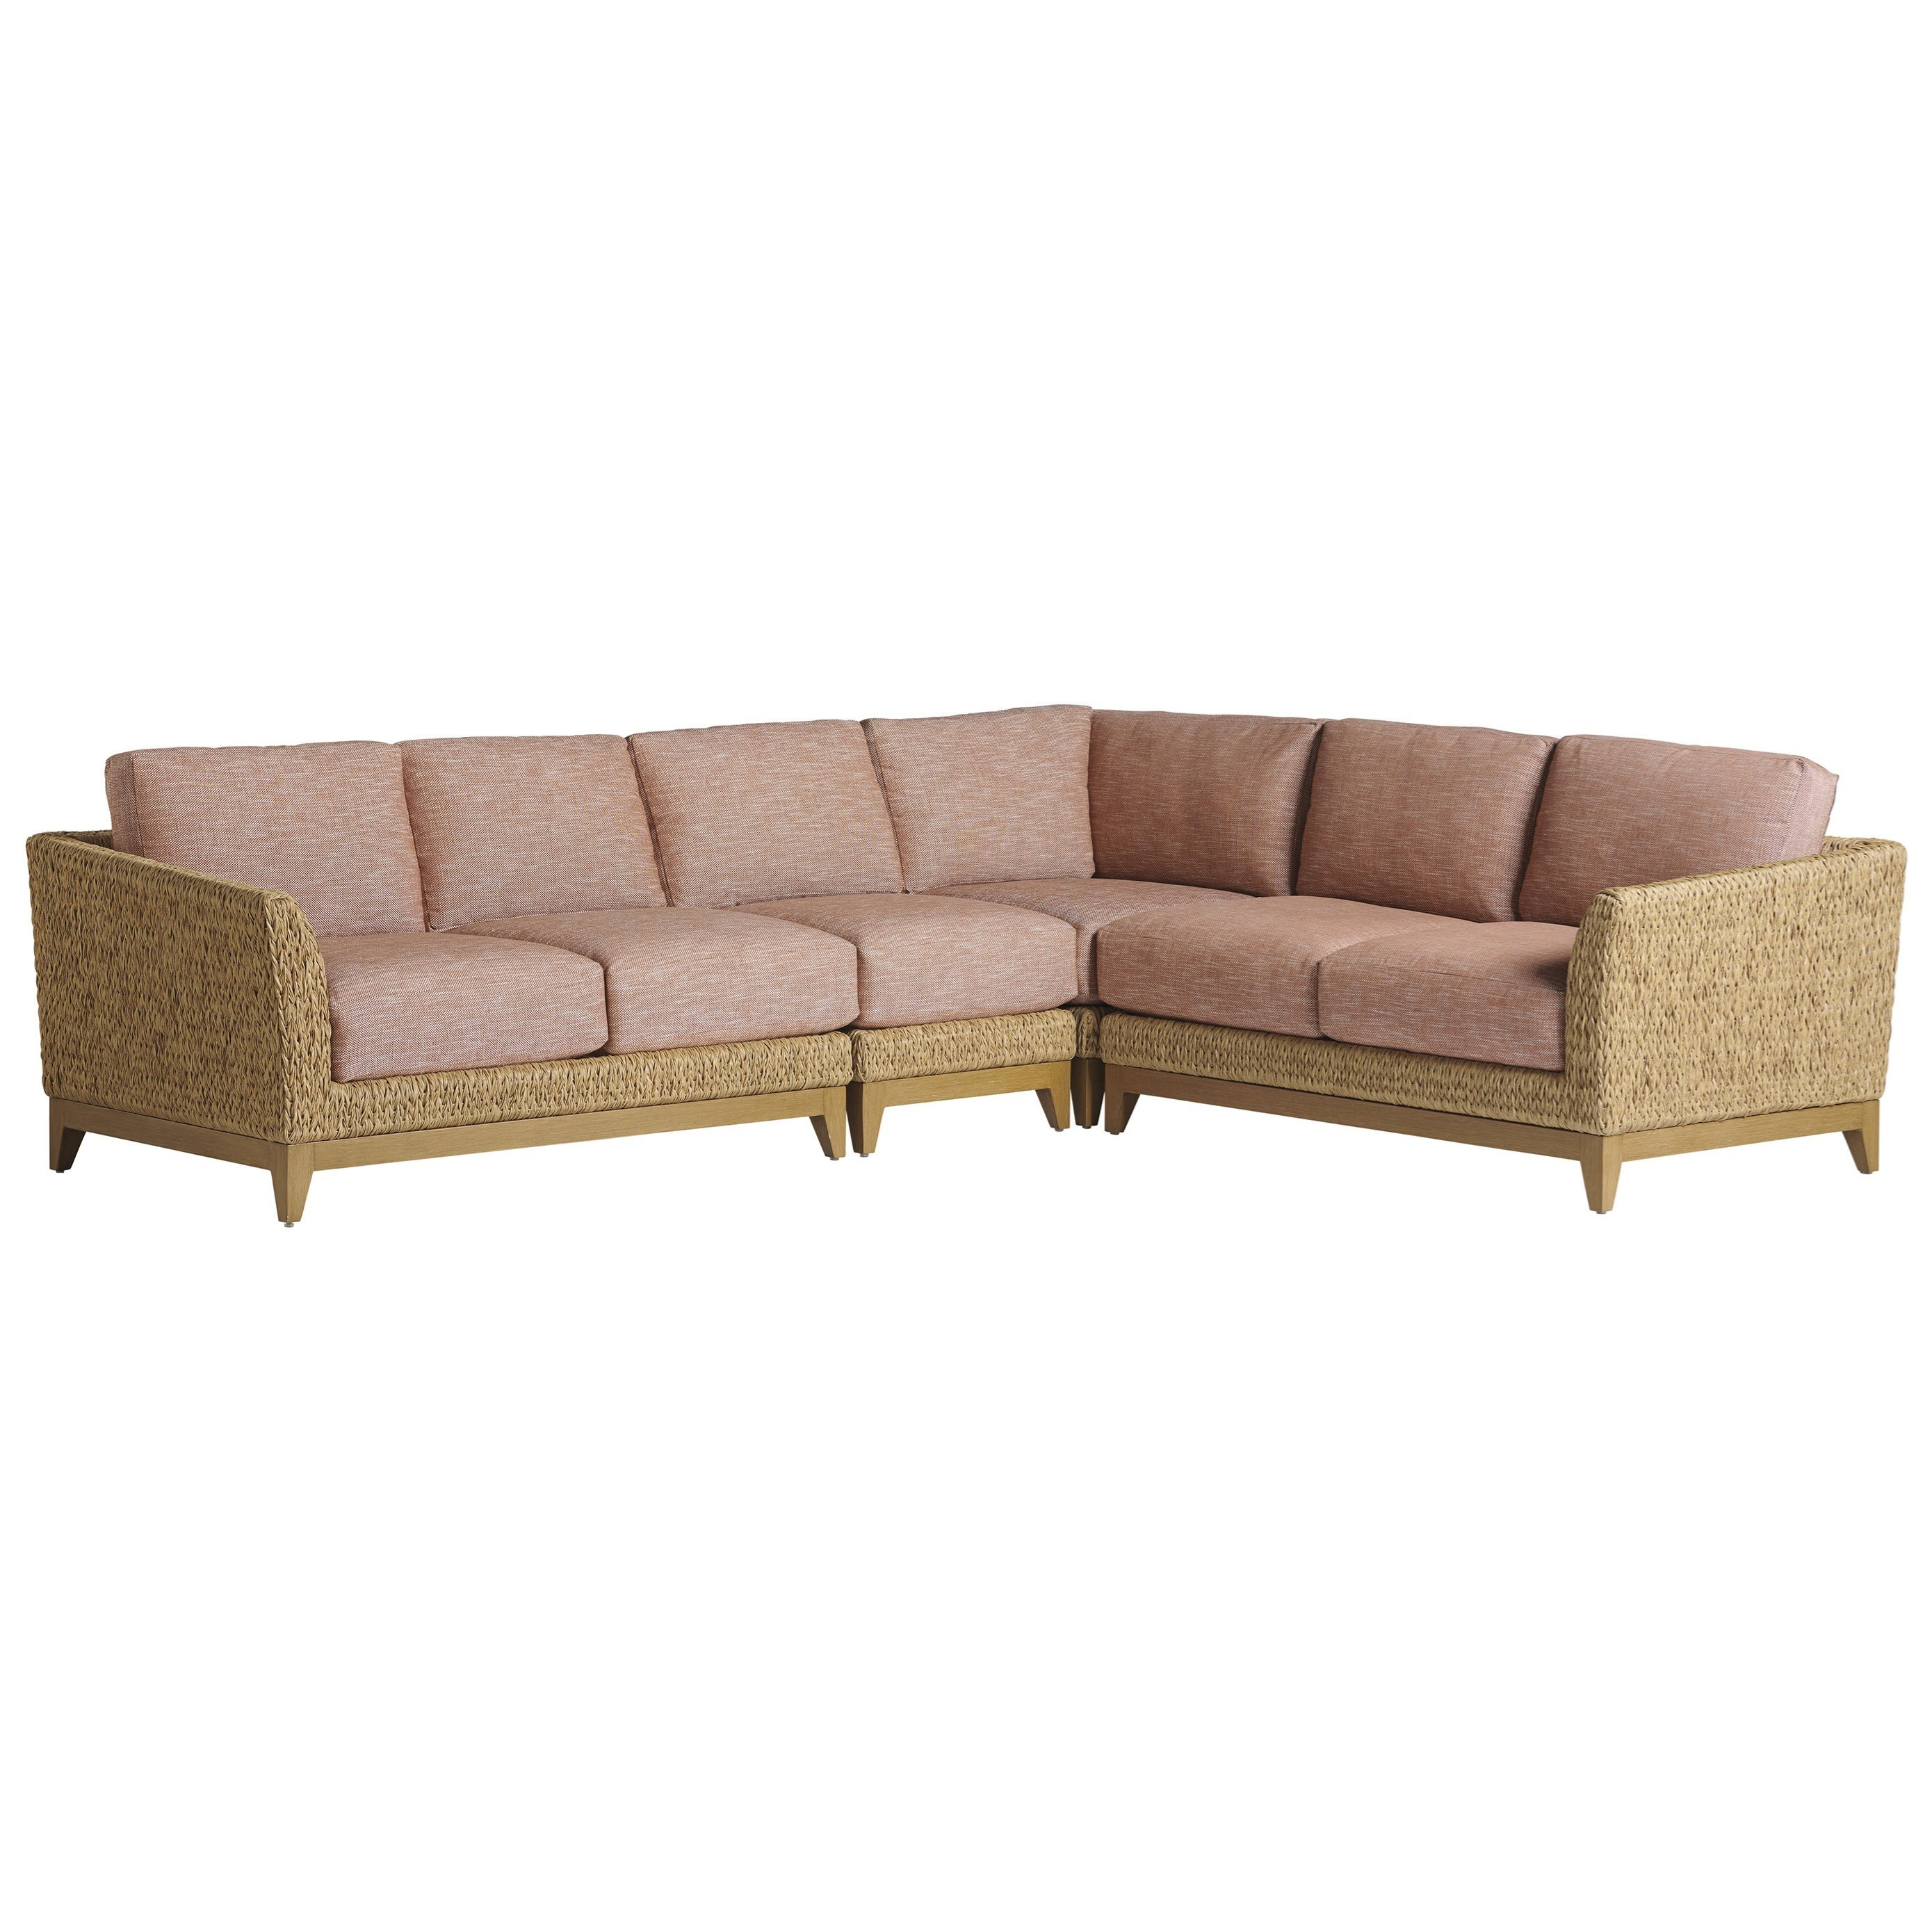 Los Altos Valley View 5-Seat Outdoor Sectional by Tommy Bahama Outdoor Living at Baer's Furniture